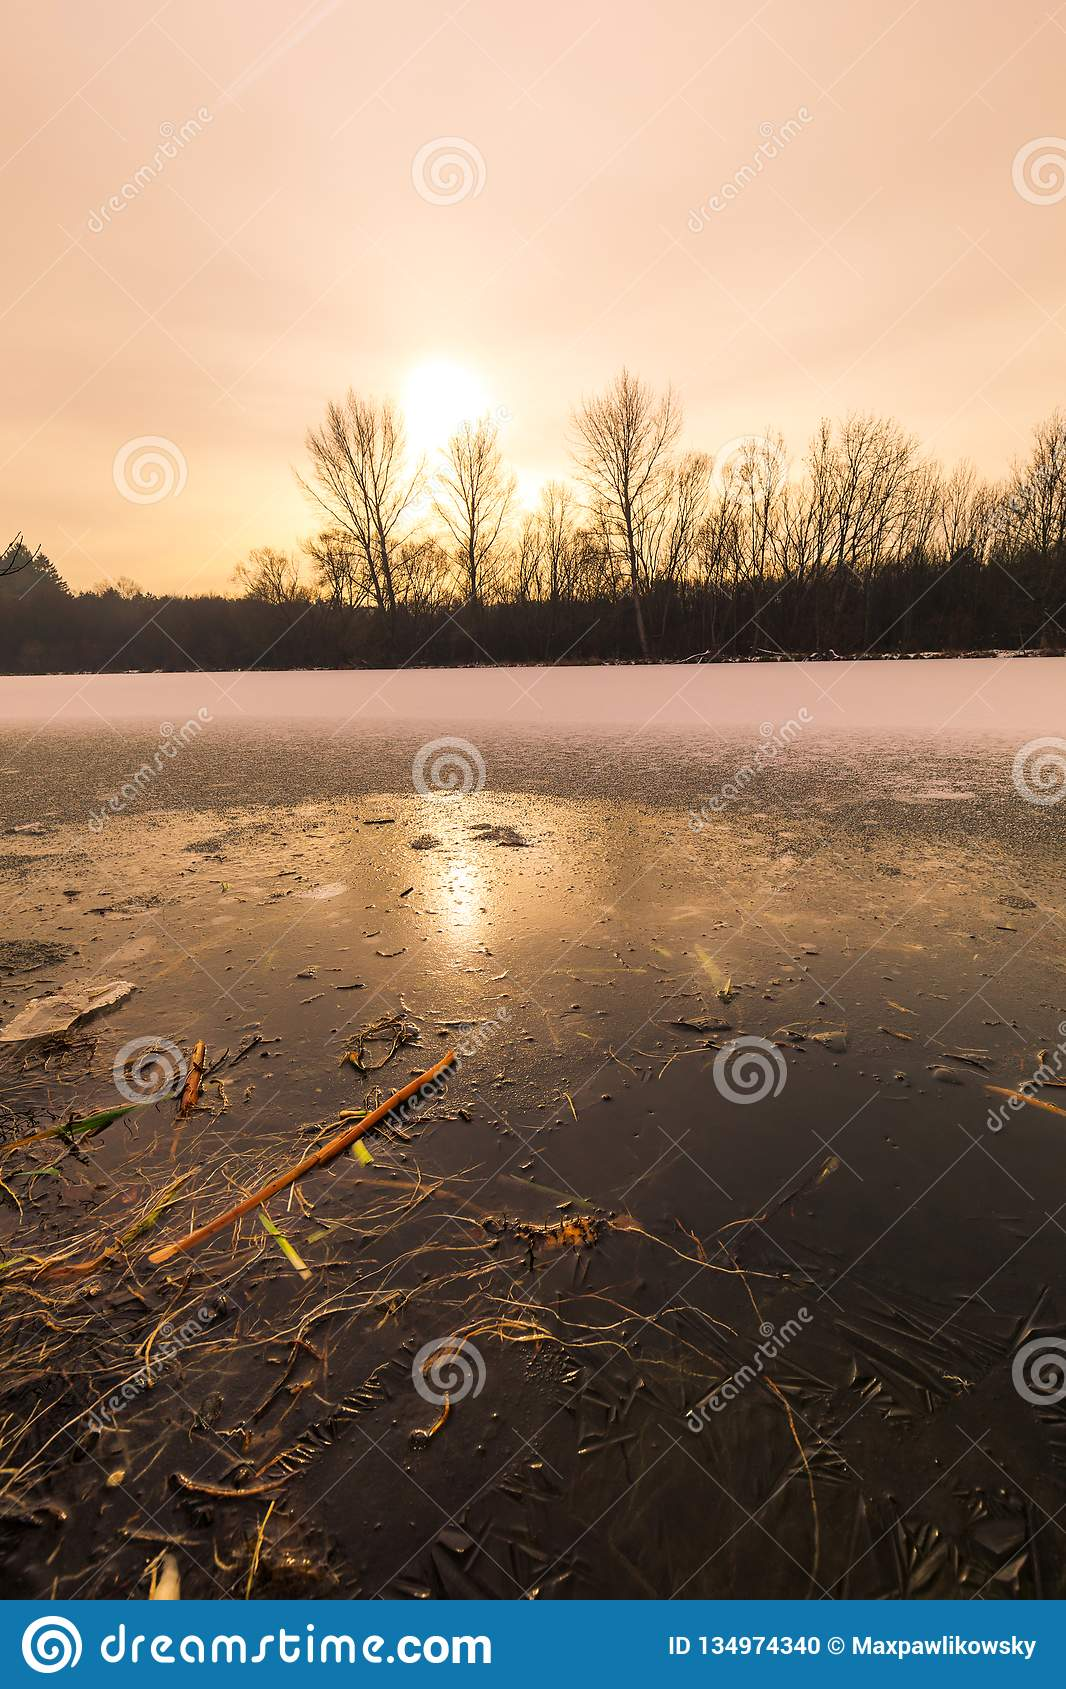 Cracks on the surface of the blue ice. Frozen lake in winter mountains landscape